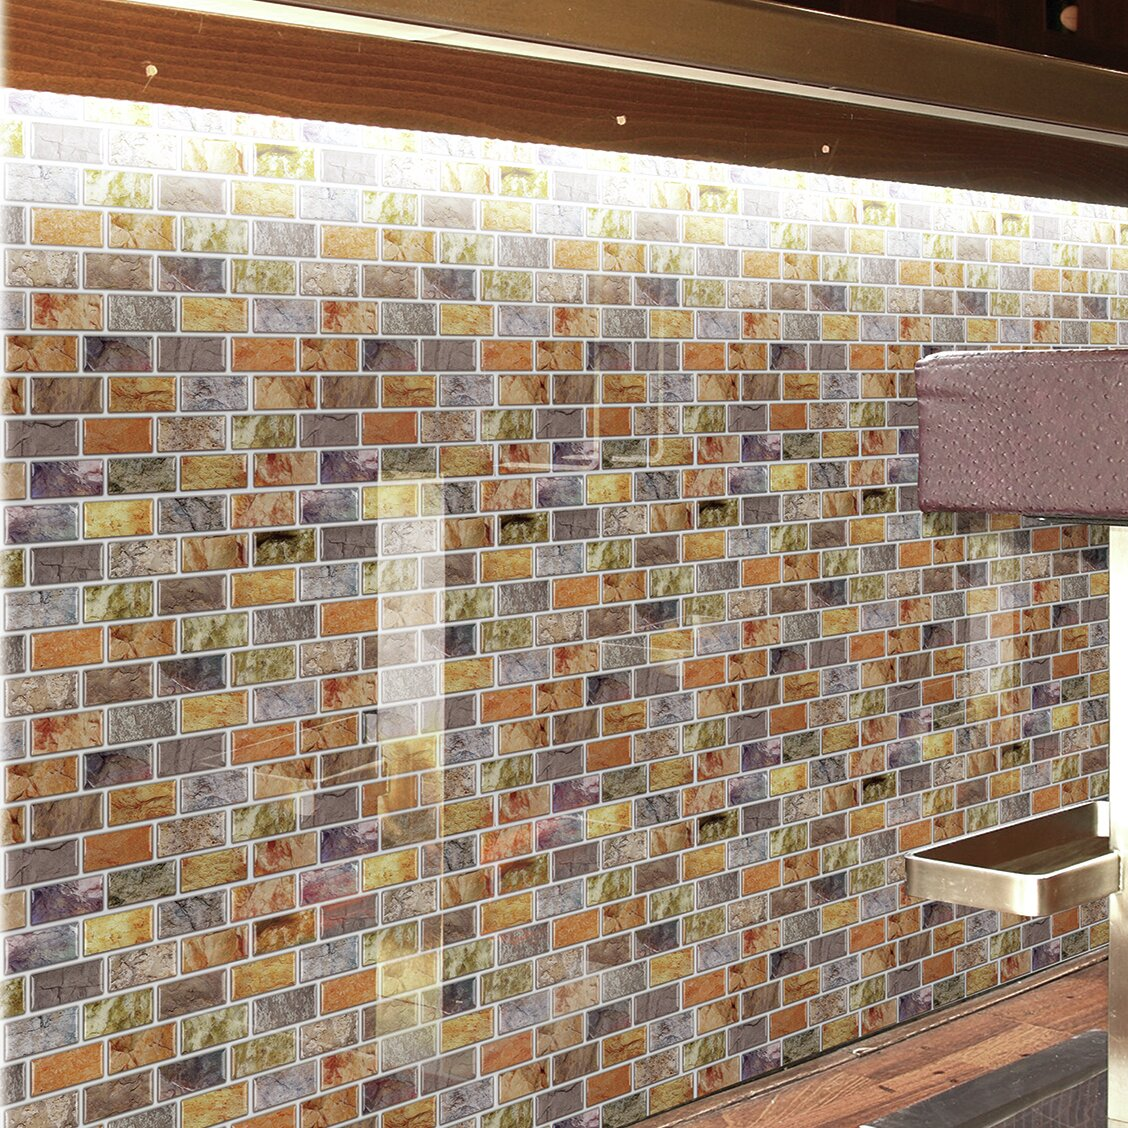 Mosaic Tile Richmond Va 1500 Trend Home Design 1500 Trend Home